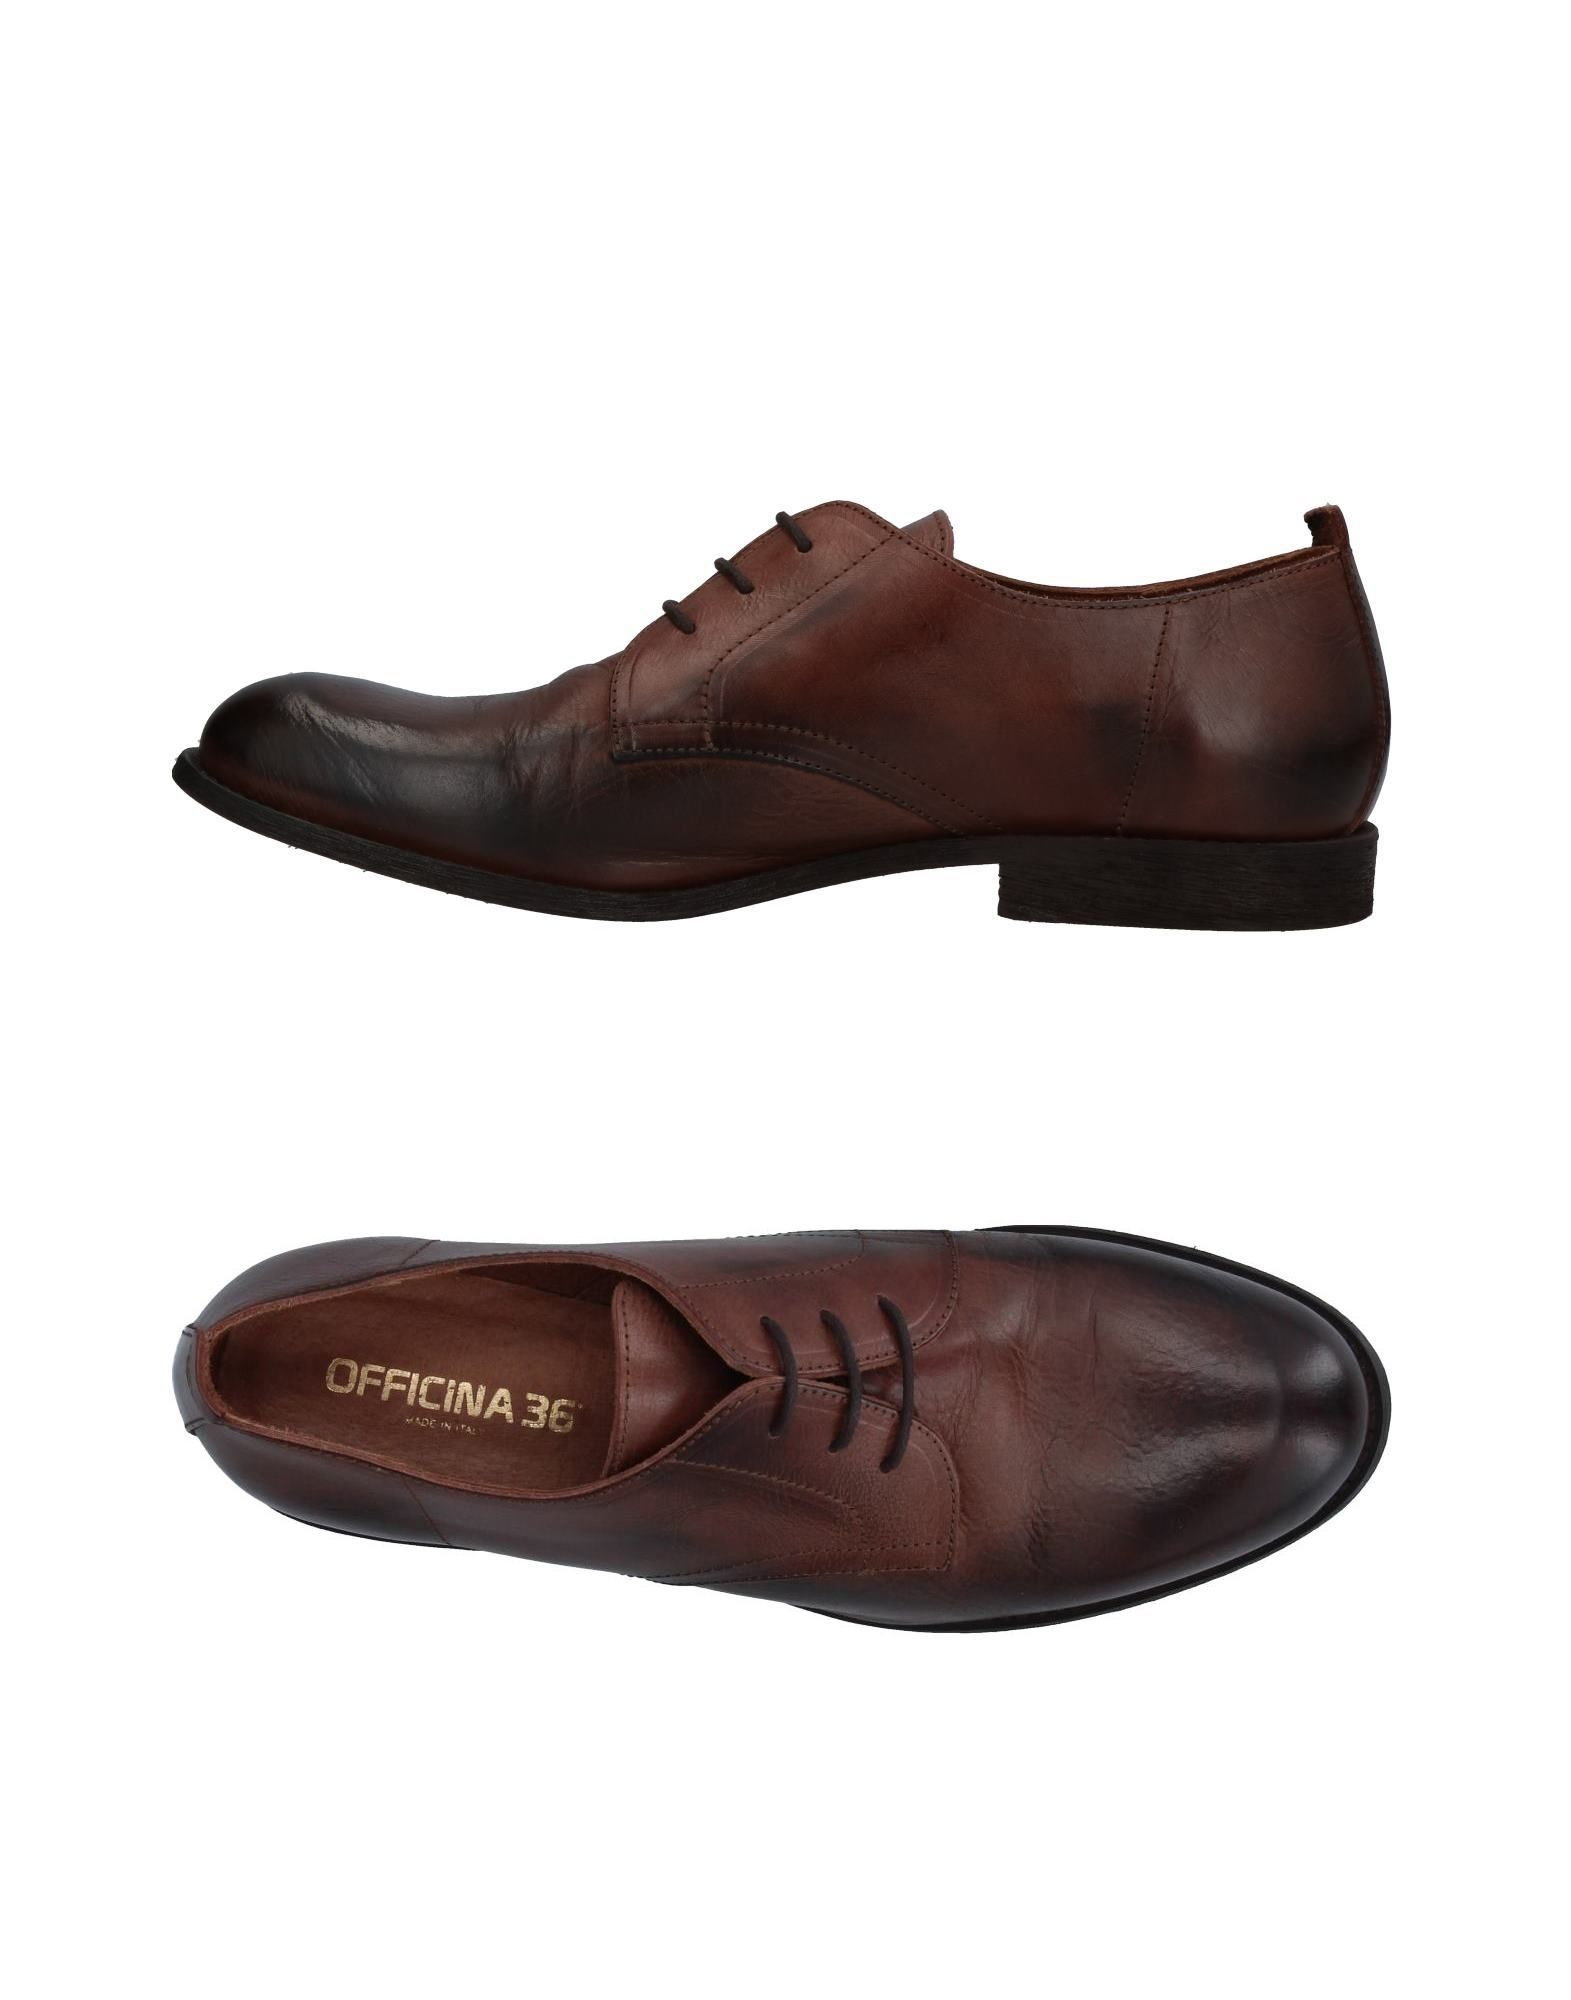 Chaussures À Lacets Officina 36 Homme - Chaussures À Lacets Officina 36 sur